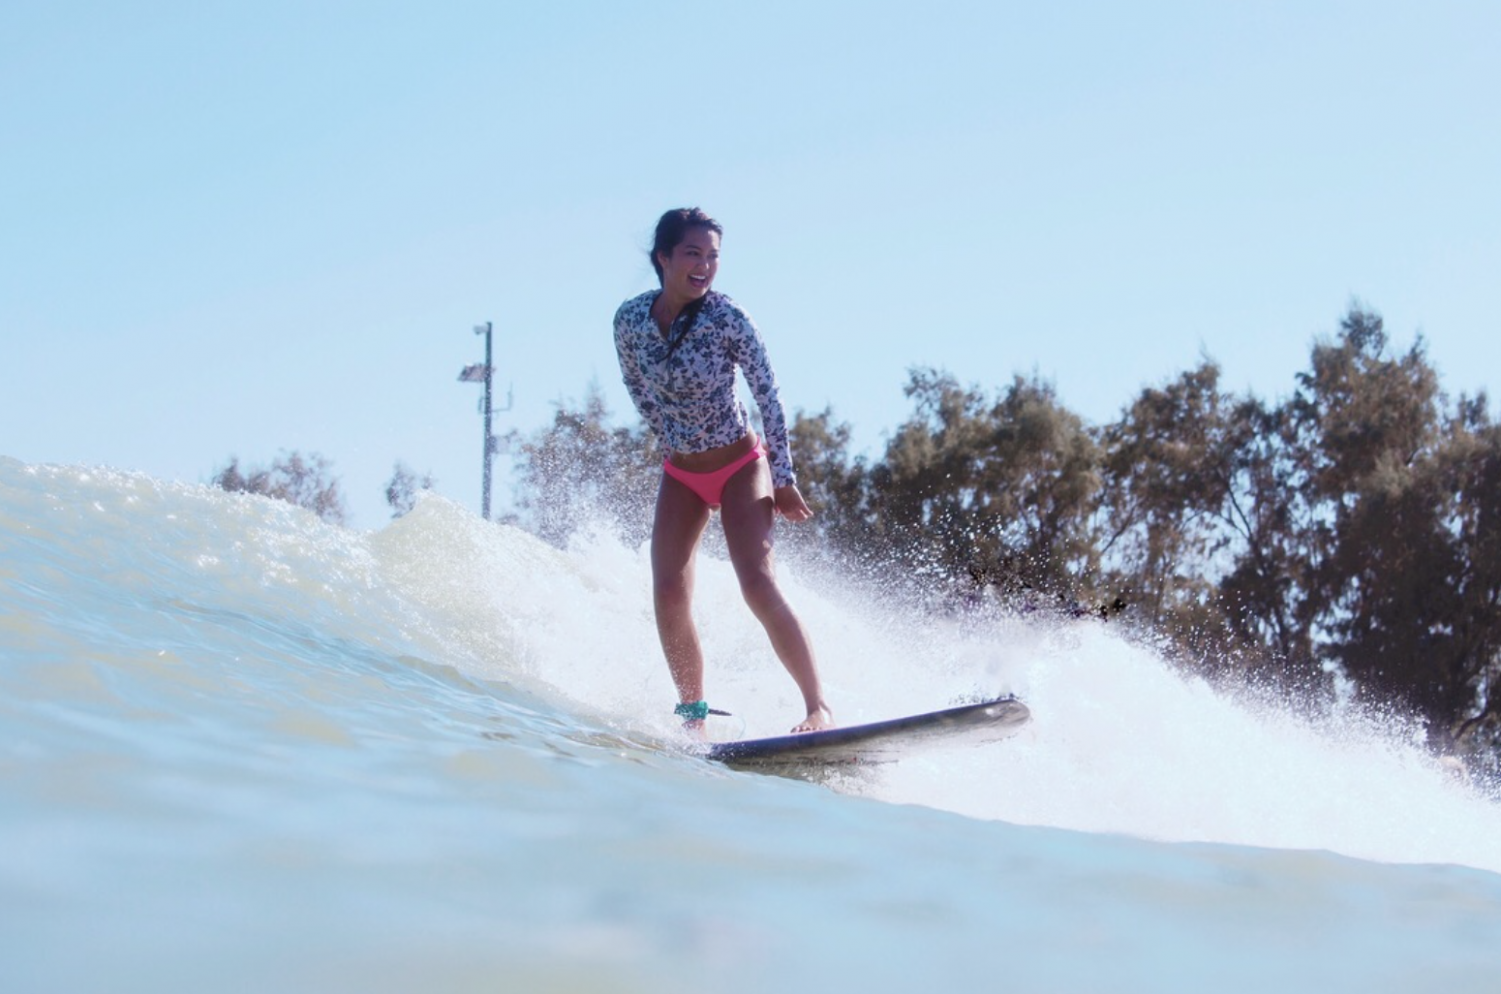 Izzy Banatao catches a wave at Kelly Slater's Surf Ranch in Lemoore California. The Surf Ranch allows for people to surf on man-made waves, 100 miles away from the ocean. Photo courtesy of Izzy Banatao.